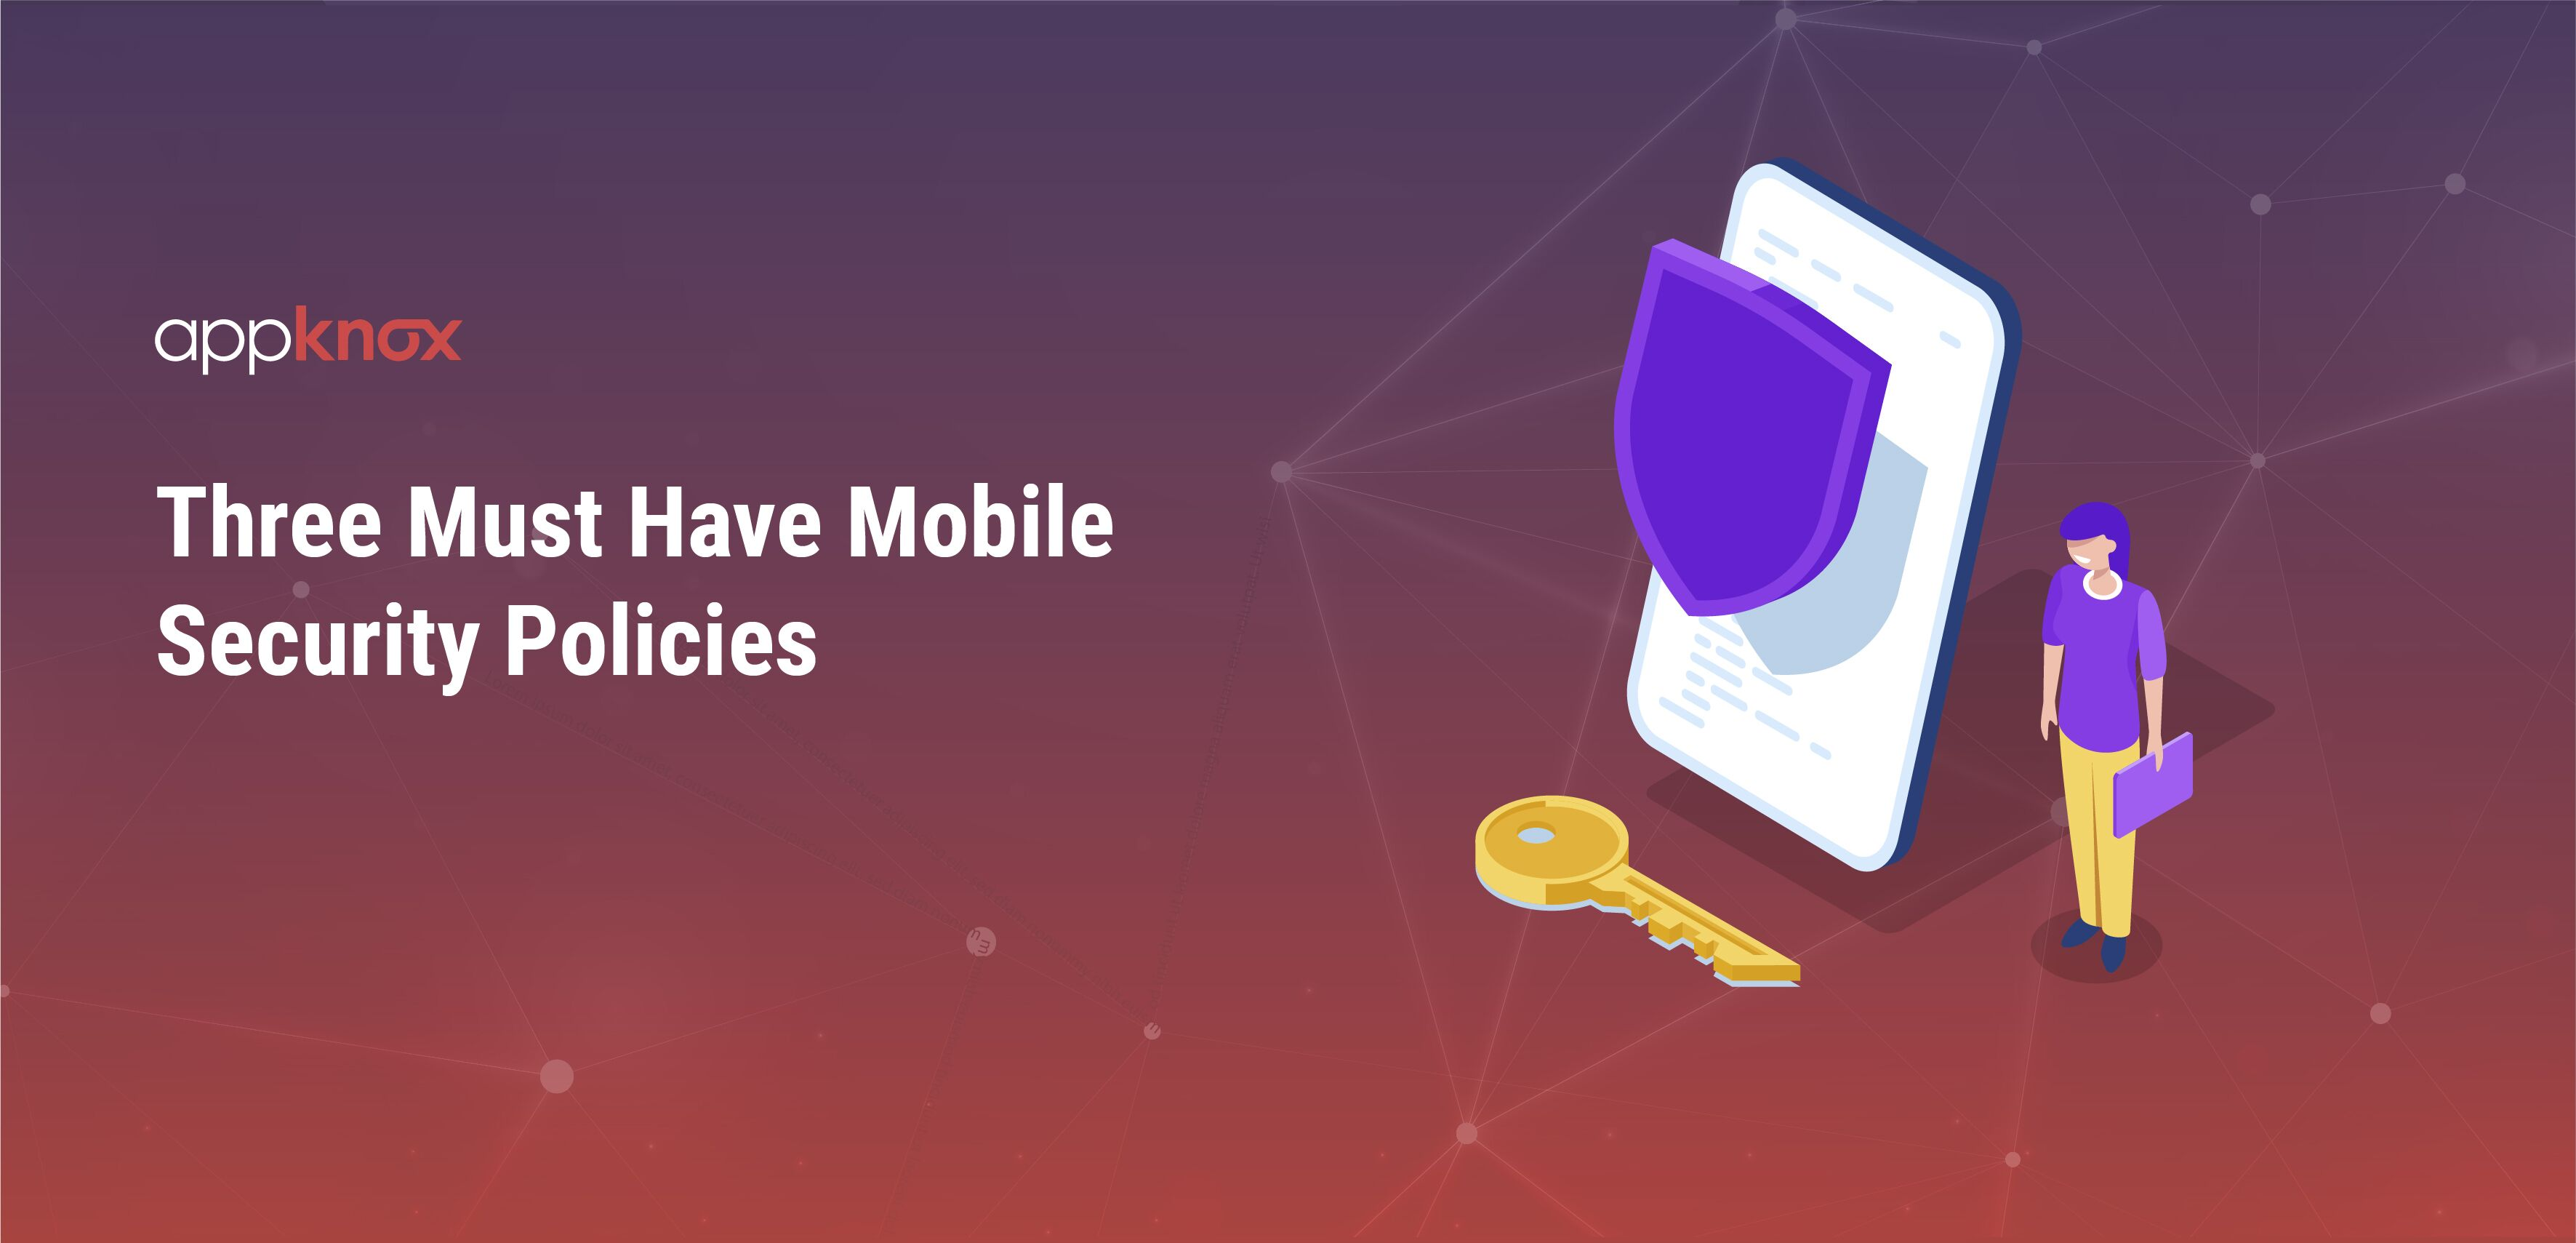 Three must have mobile security policies